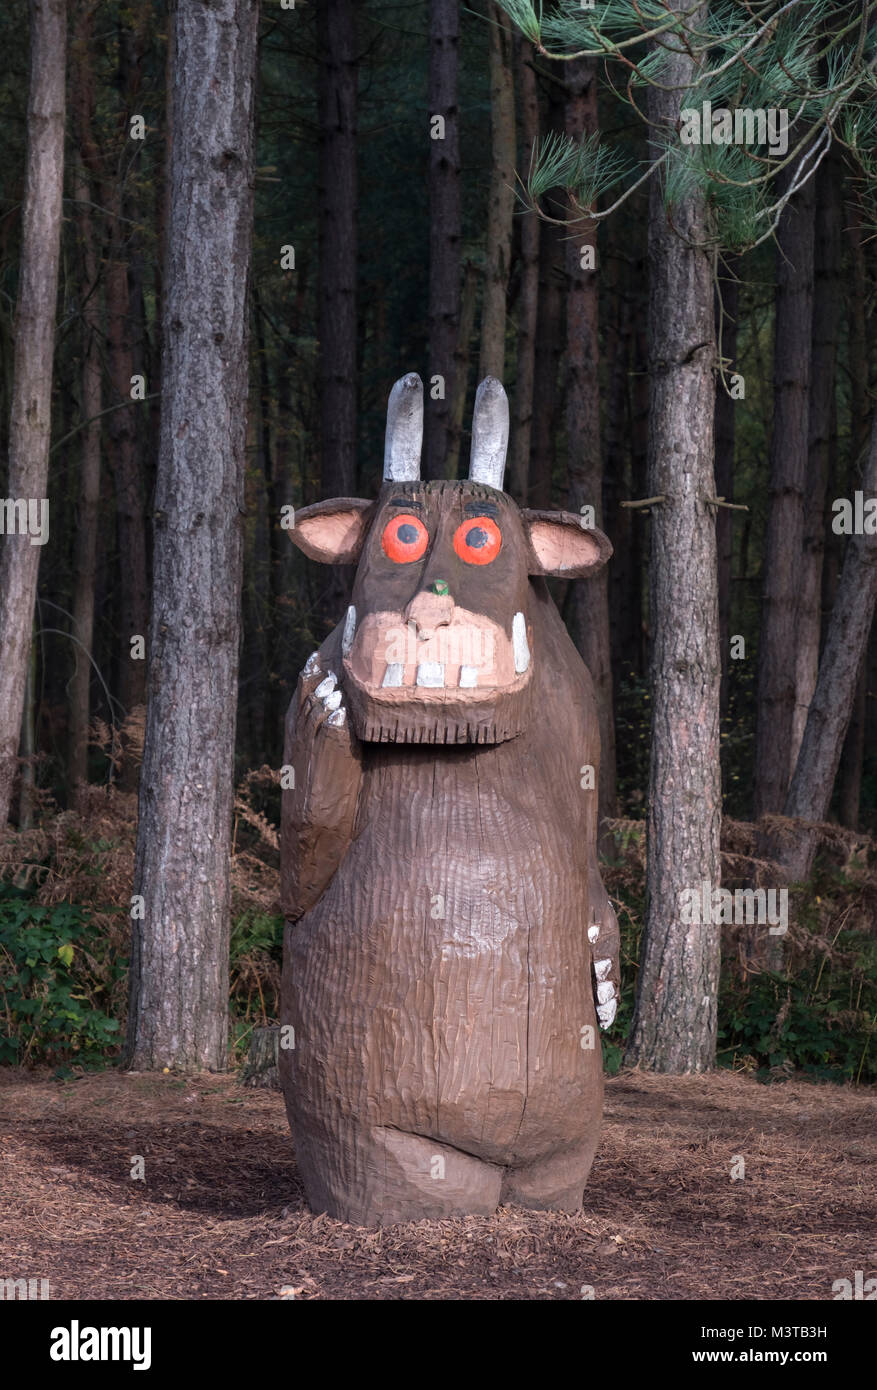 The Gruffalo Wood Carving in Delamere Forest, Delamere, Cheshire, England, UK - Stock Image